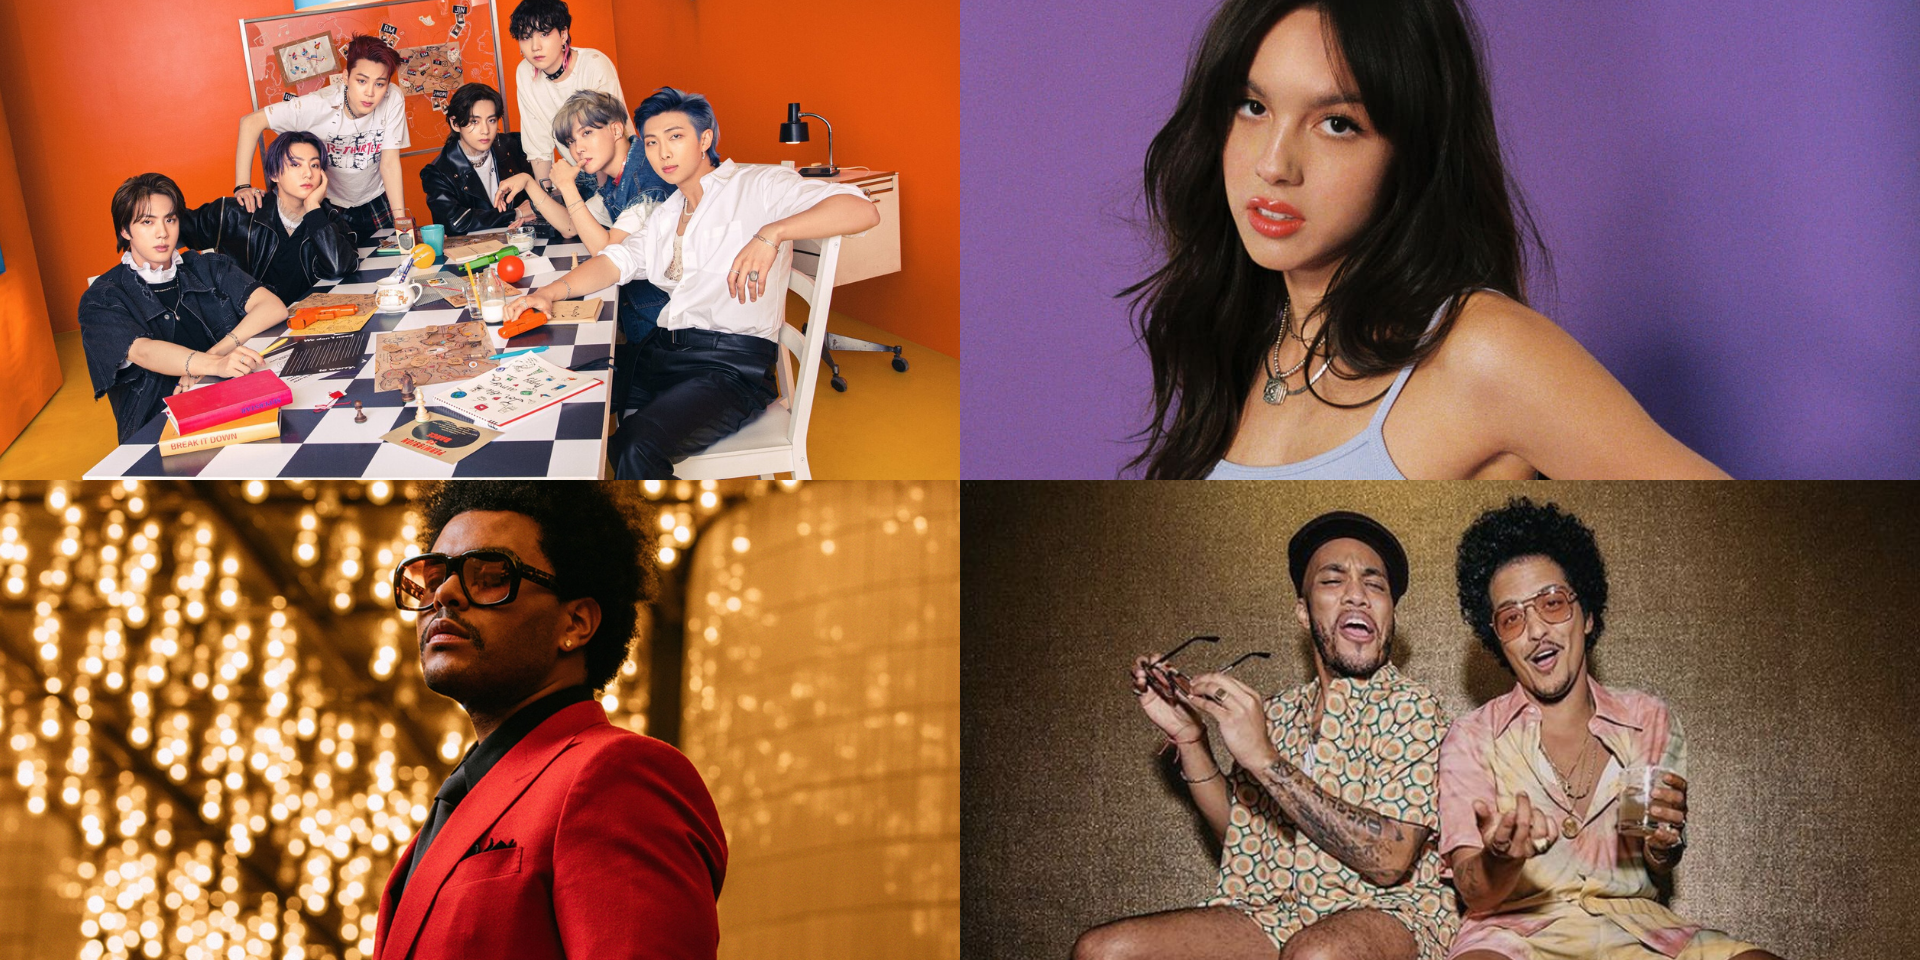 BTS, Olivia Rodrigo, The Weeknd, Silk Sonic, and more have 2021's Top Selling Songs so far